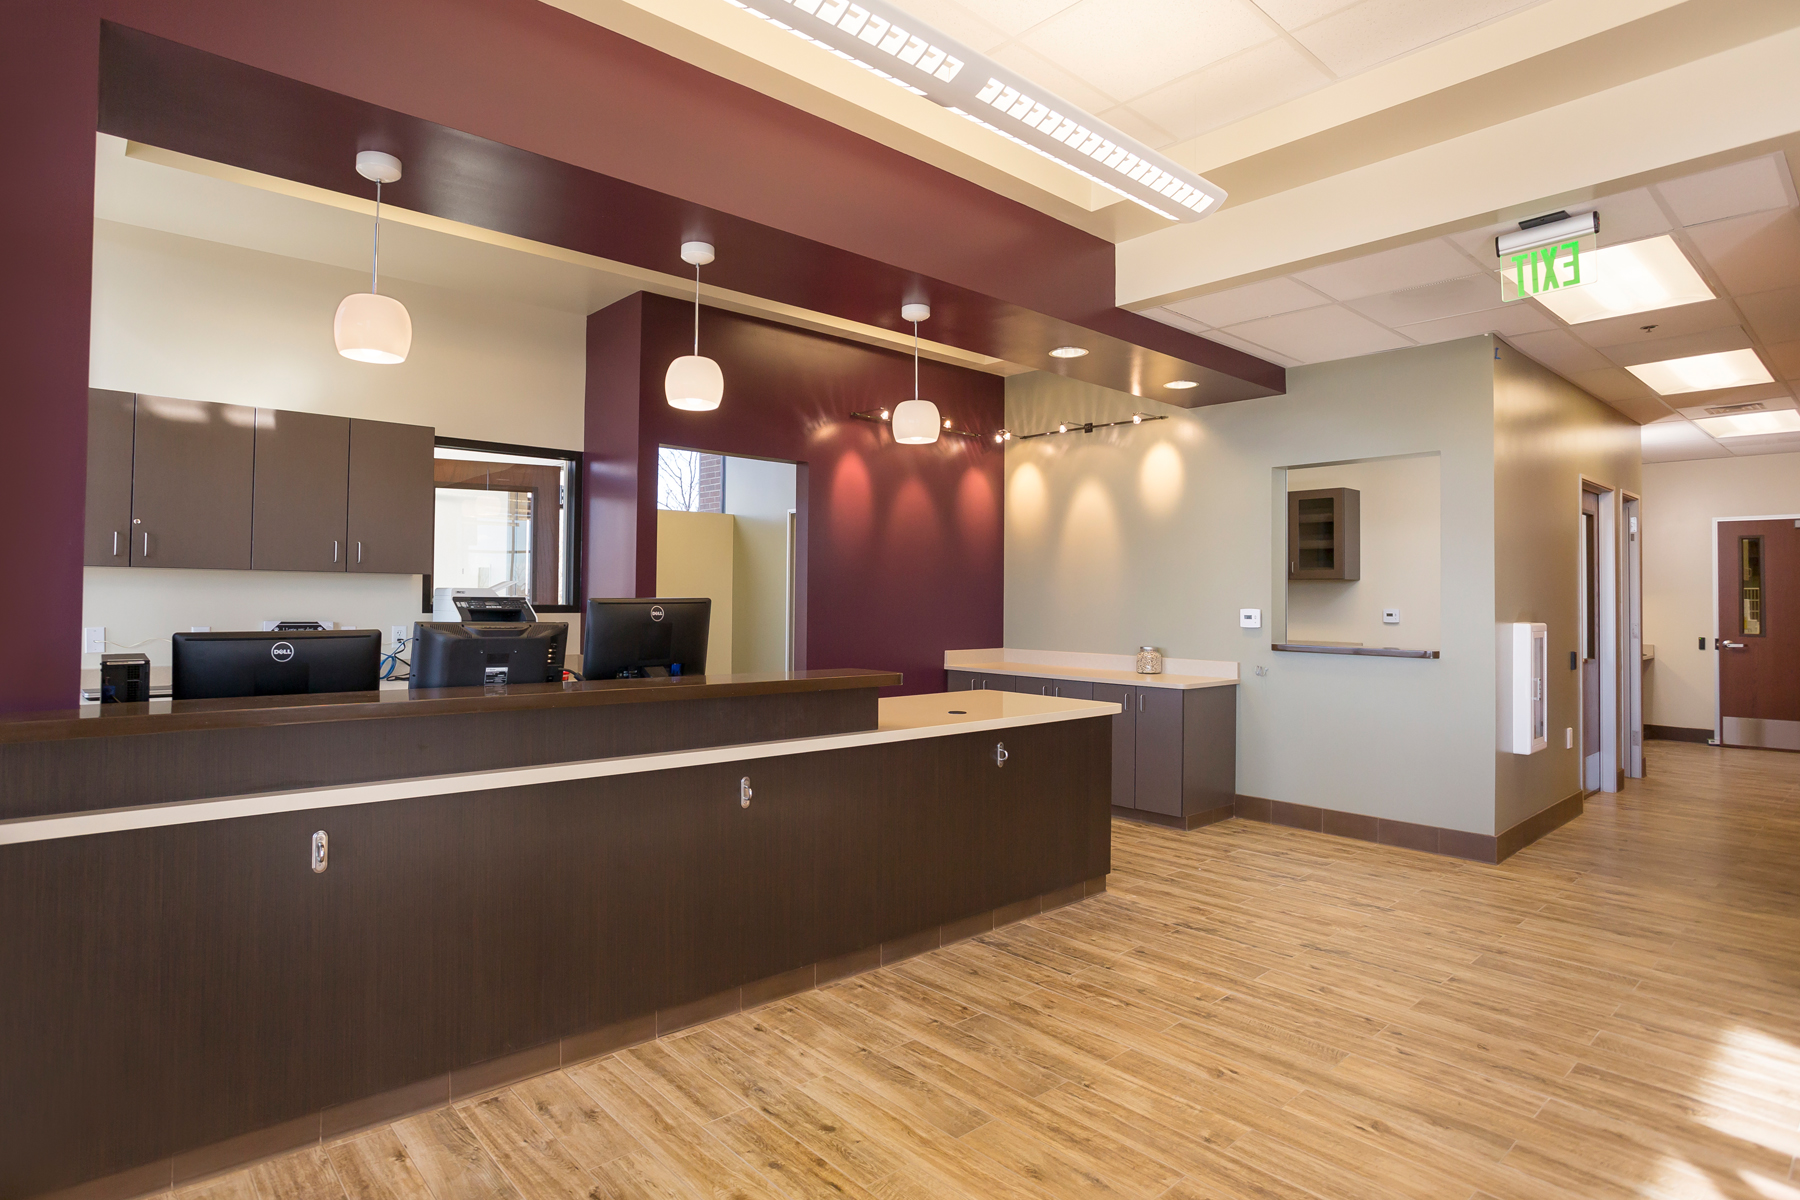 Veterinary Hospital Construction- Jordy Construction Colorado